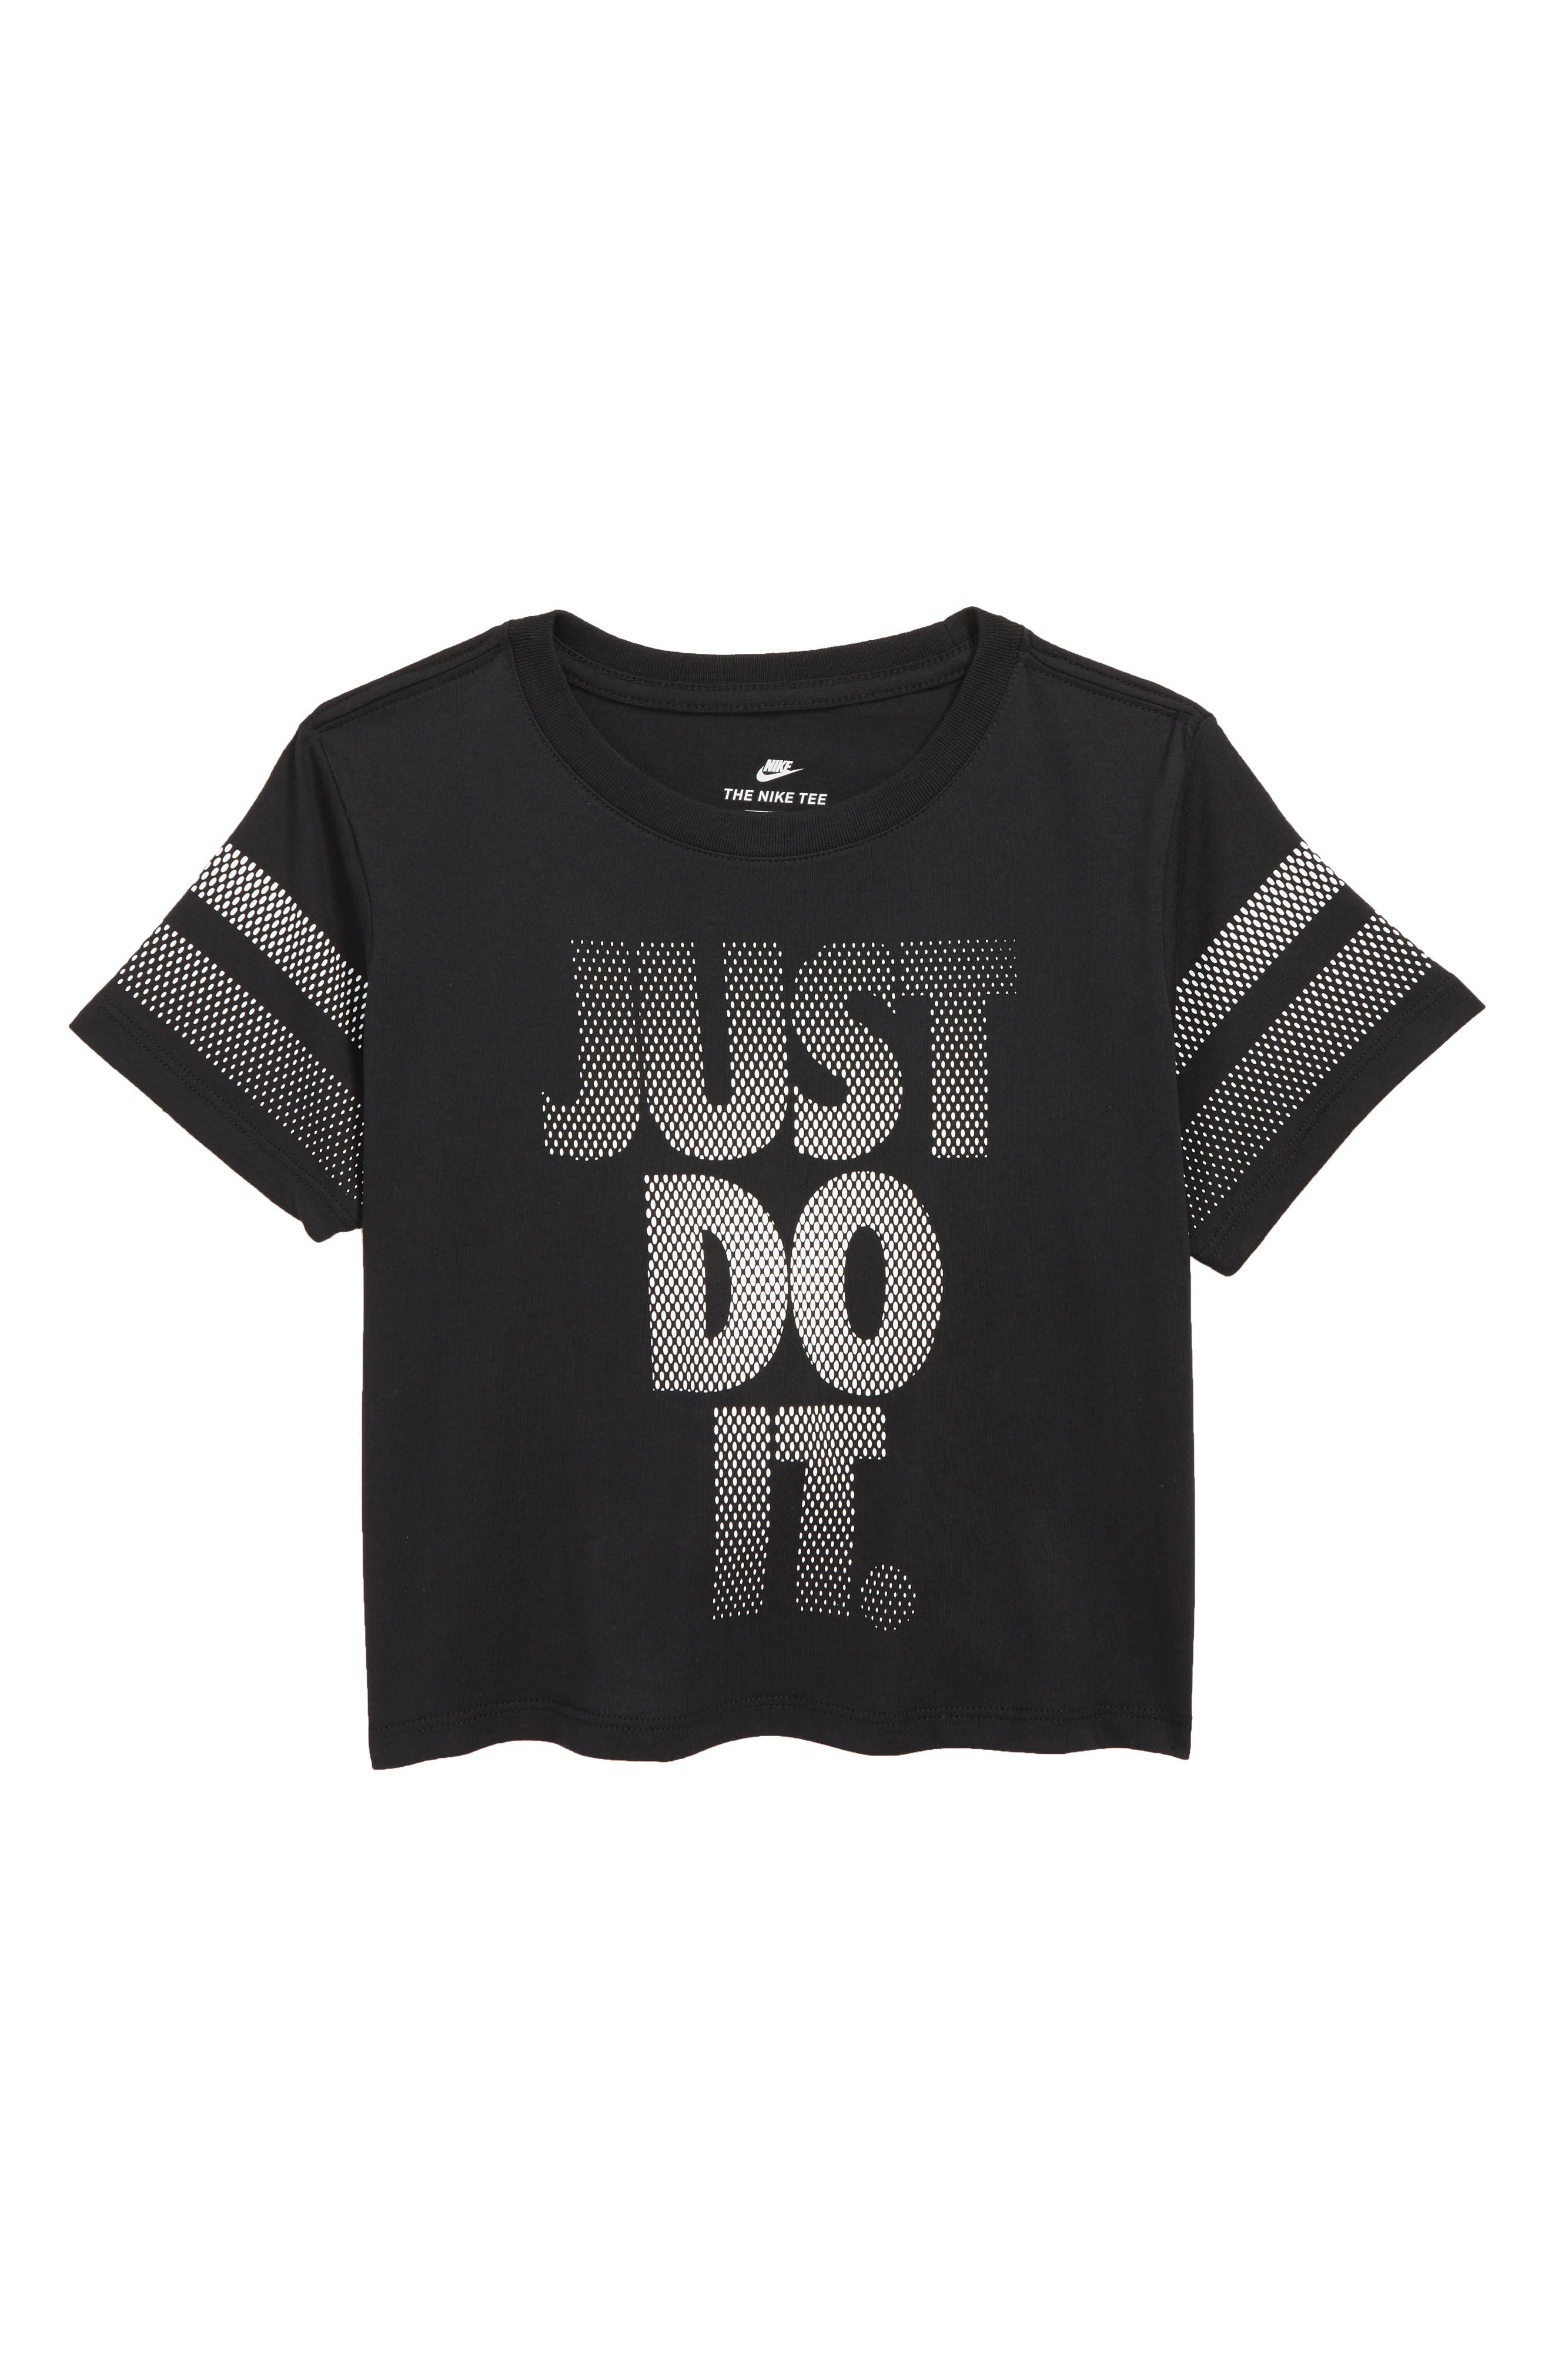 Sportswear Just Do It Tee,                         Main,                         color, BLACK/ WHITE